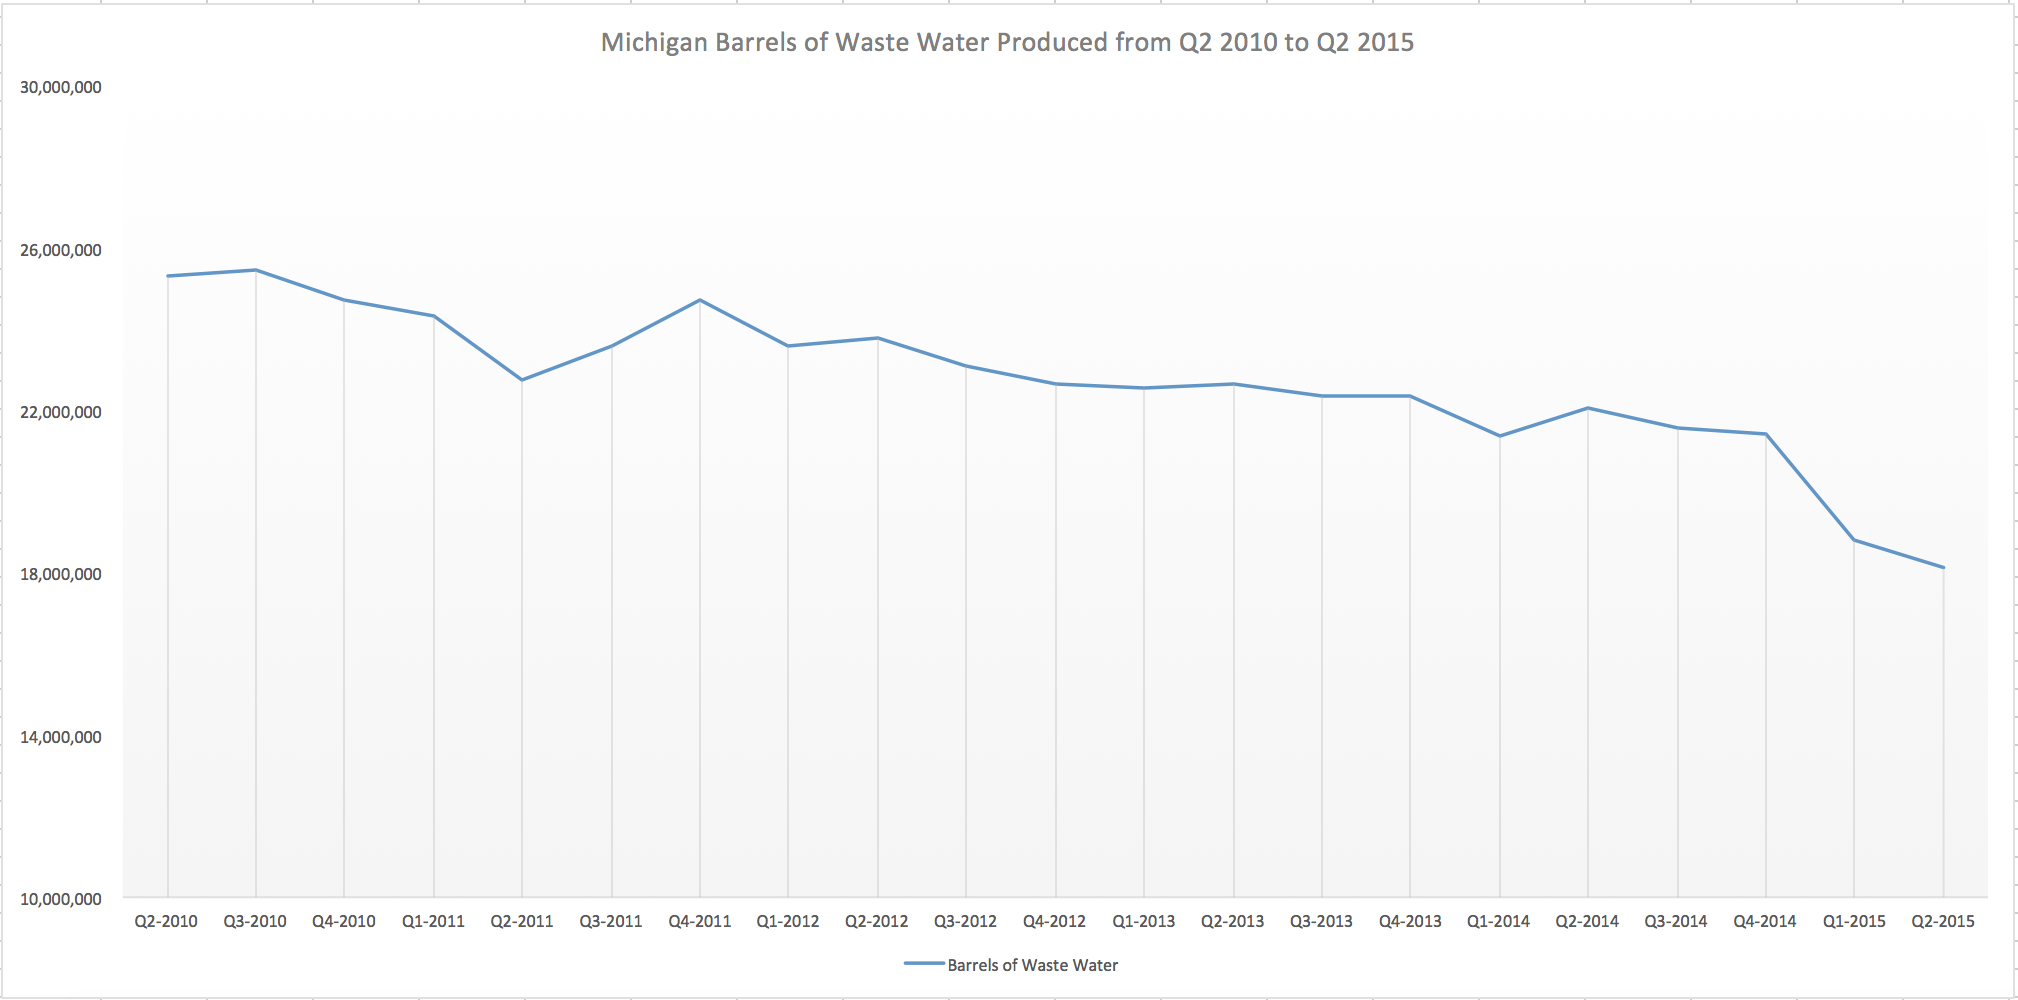 5 year waste water production